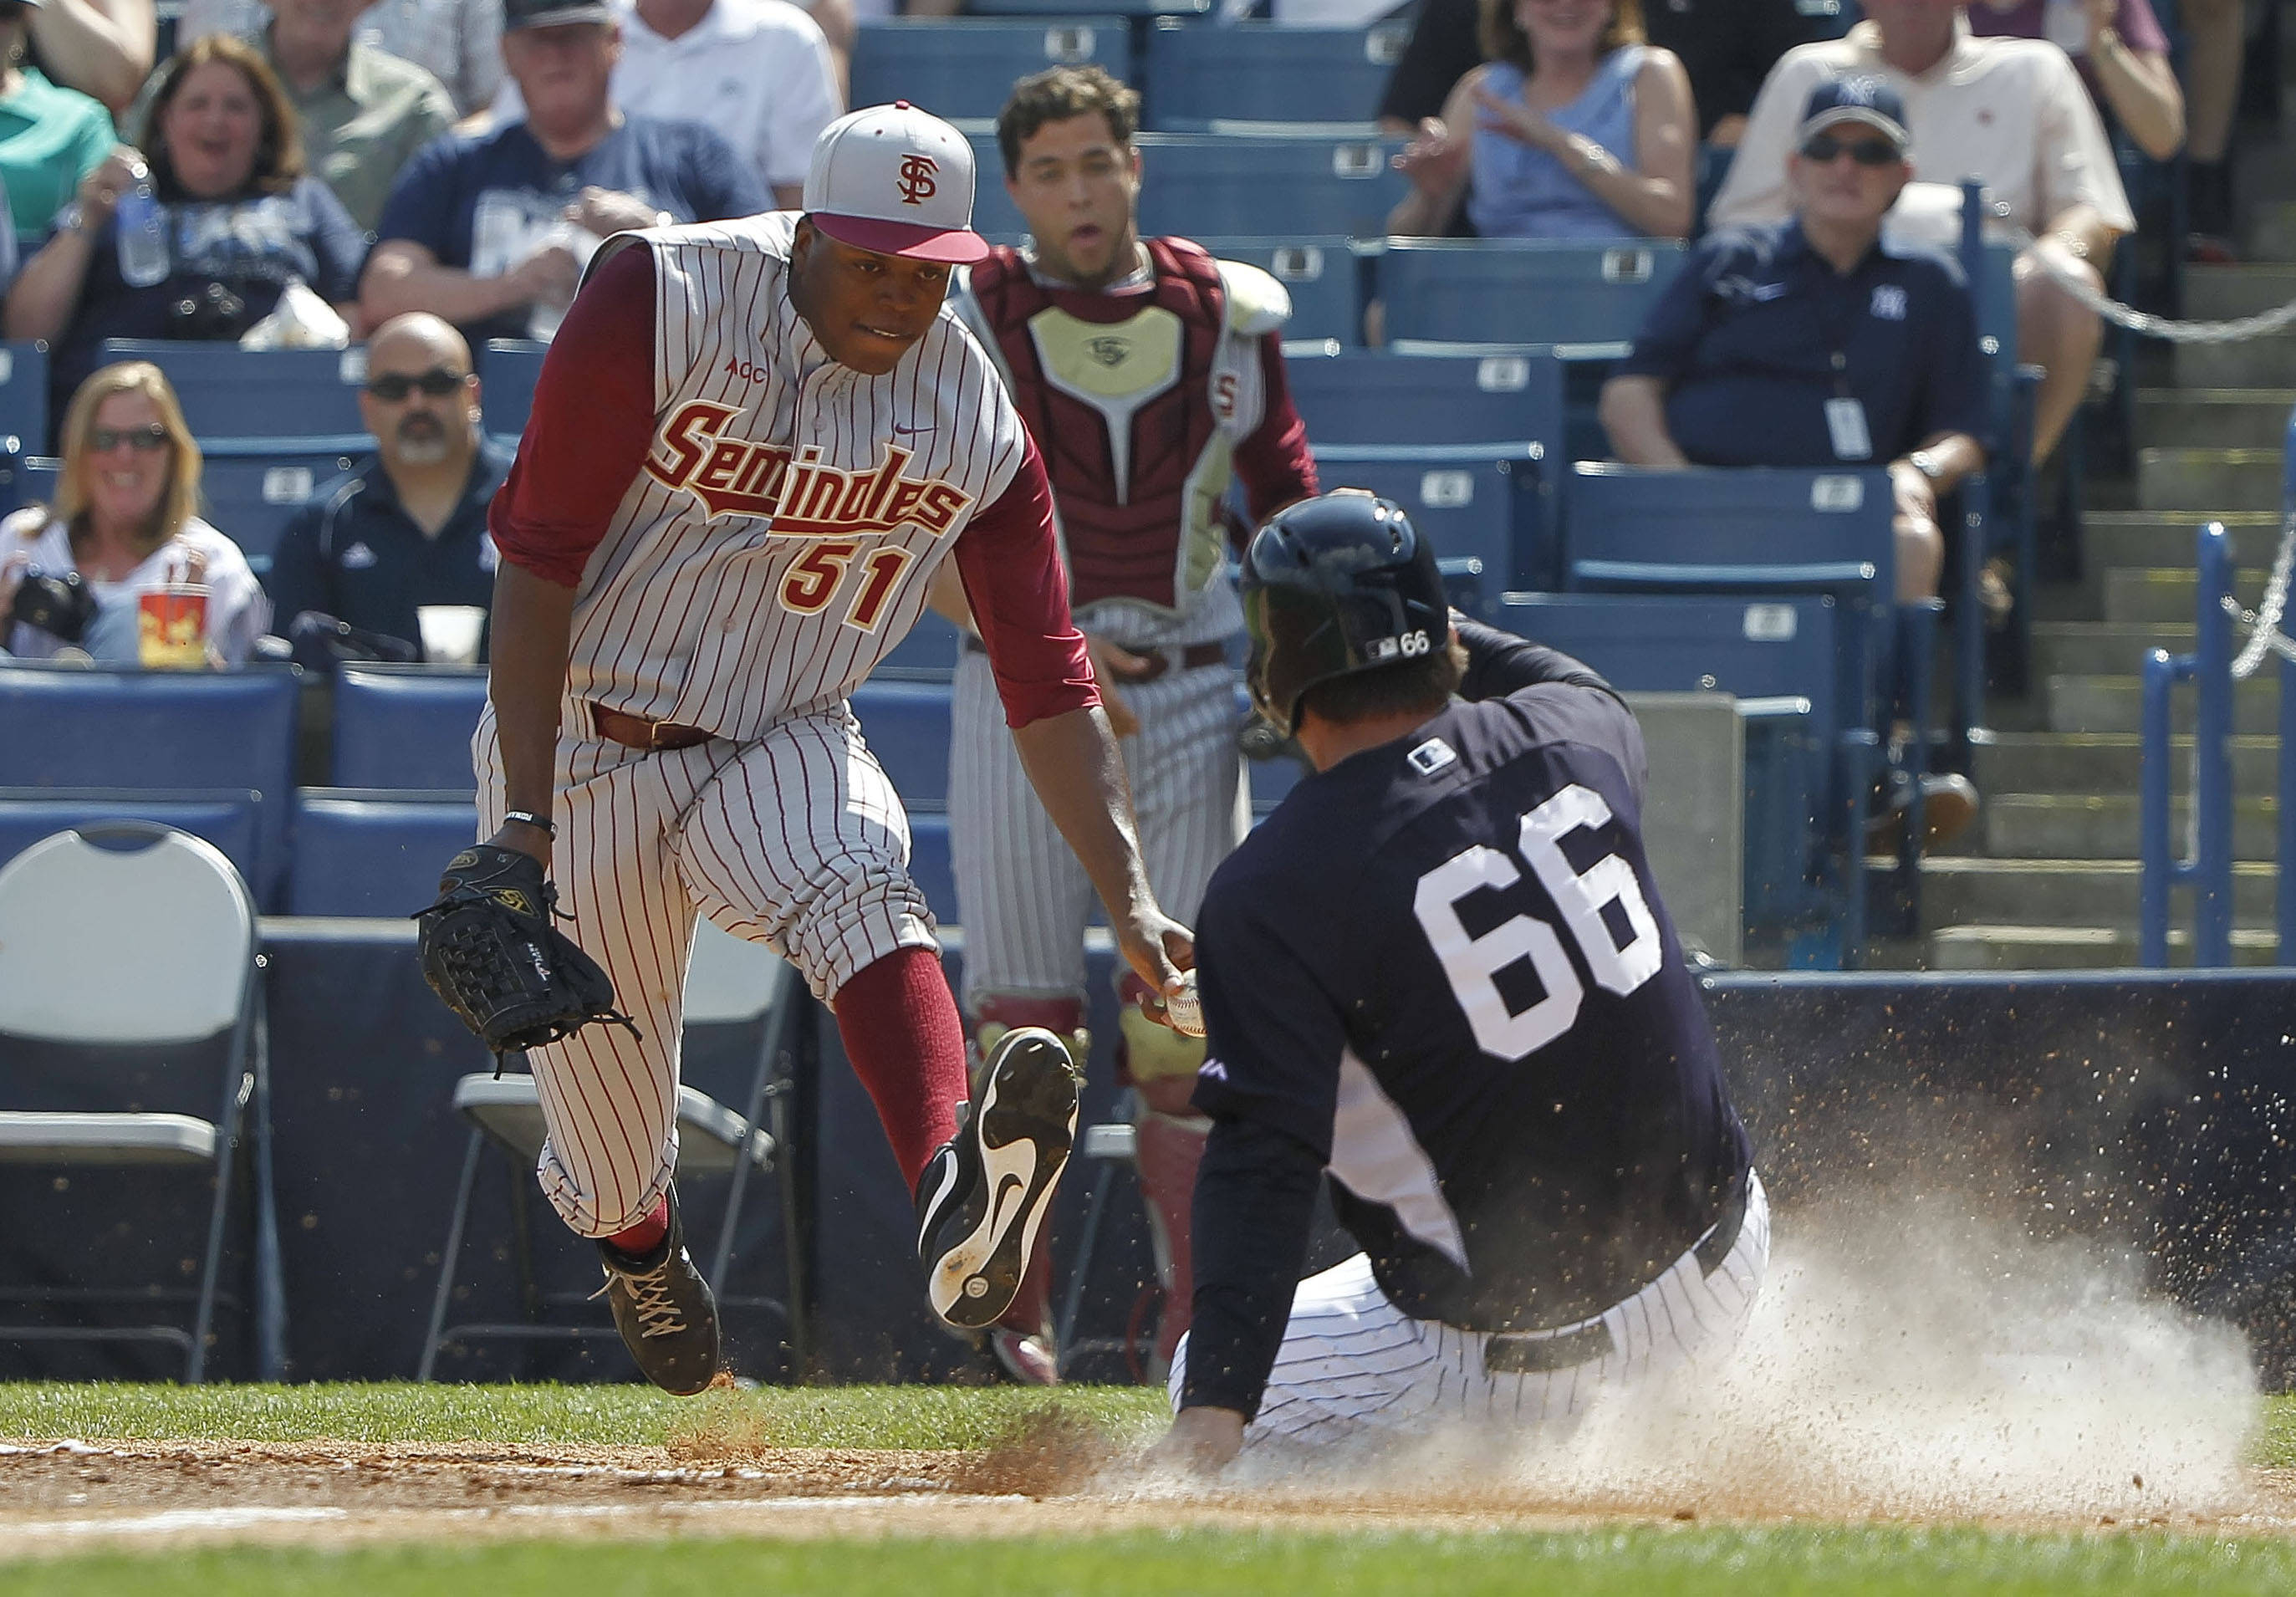 Feb 25, 2014; Tampa, FL, USA; Florida State Seminoles pitcher Brandon Johnson (51) attempted to tag out New York Yankees catcher John Ryan Murphy (66) as he scored during the third inning at George M. Steinbrenner Field. Mandatory Credit: Kim Klement-USA TODAY Sports